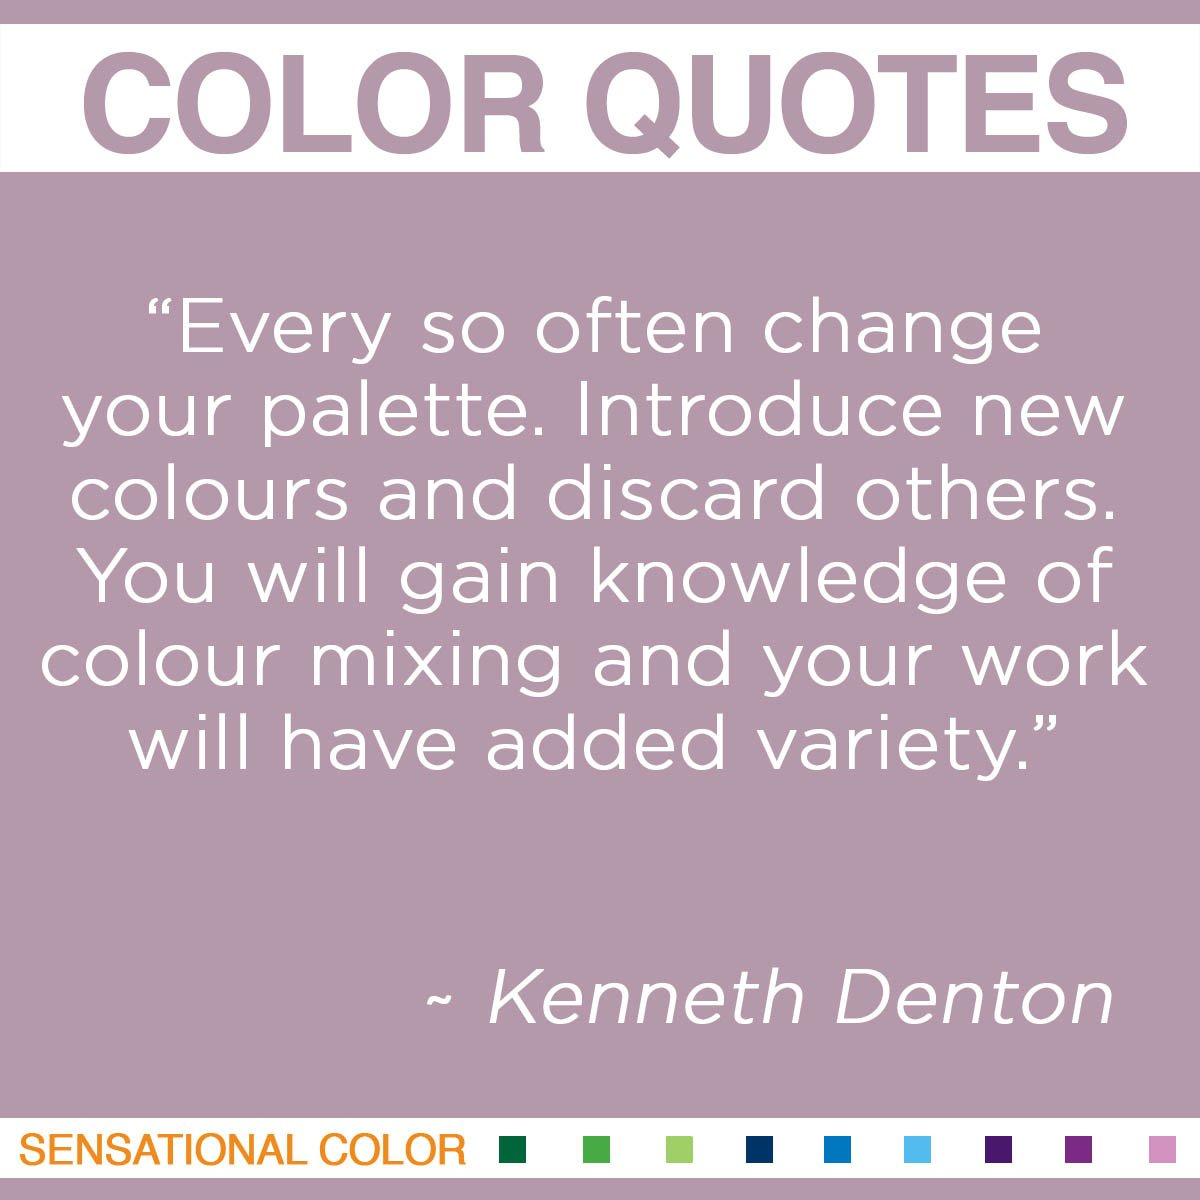 """Every so often change your palette. Introduce new colours and discard others. You will gain knowledge of colour mixing and your work will have added variety."" - Kenneth Denton"